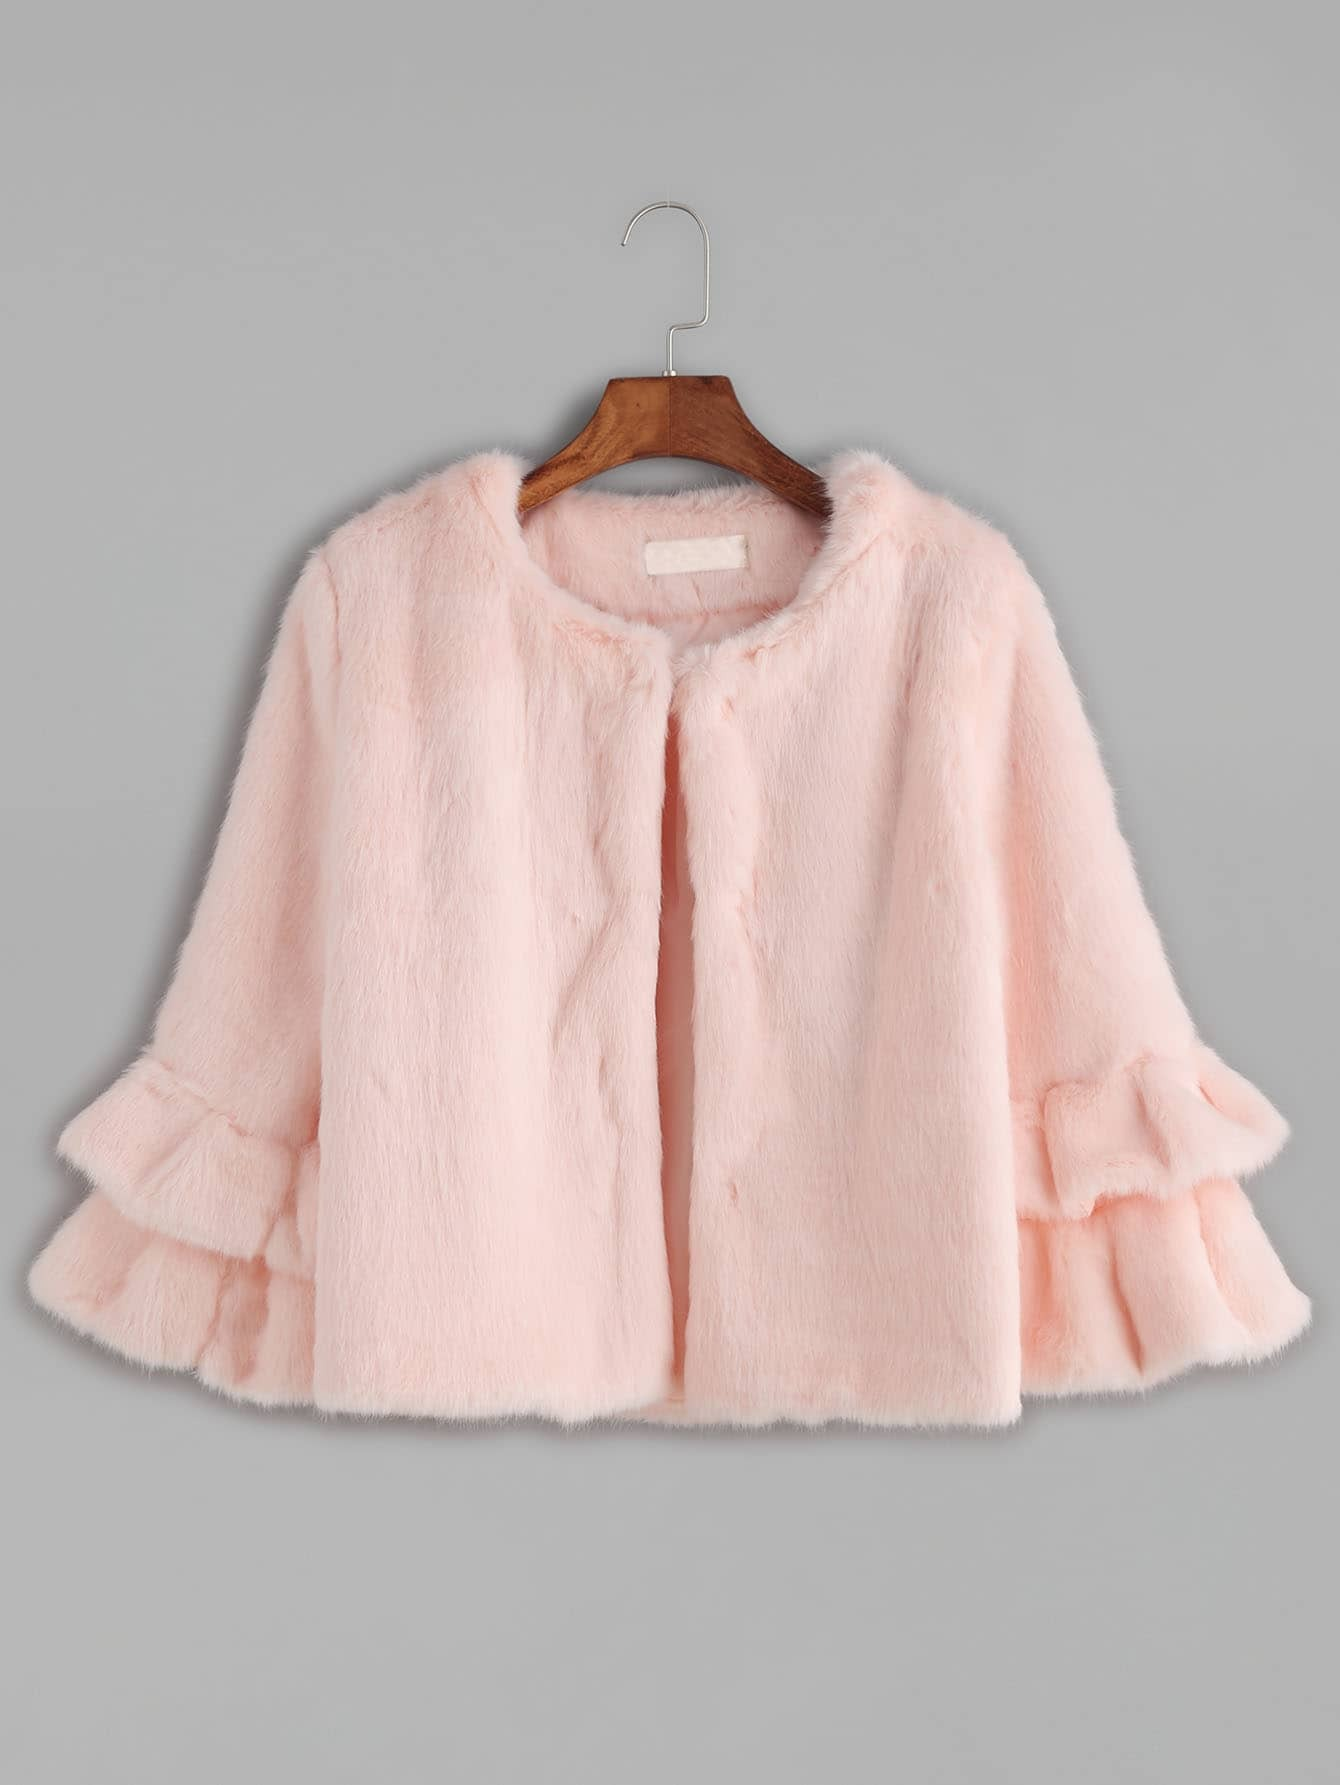 Coats Pink Faux Fur Collarless Cute Short Winter Plain Fabric has no stretch 3/4 Sleeve YES Outerwear.